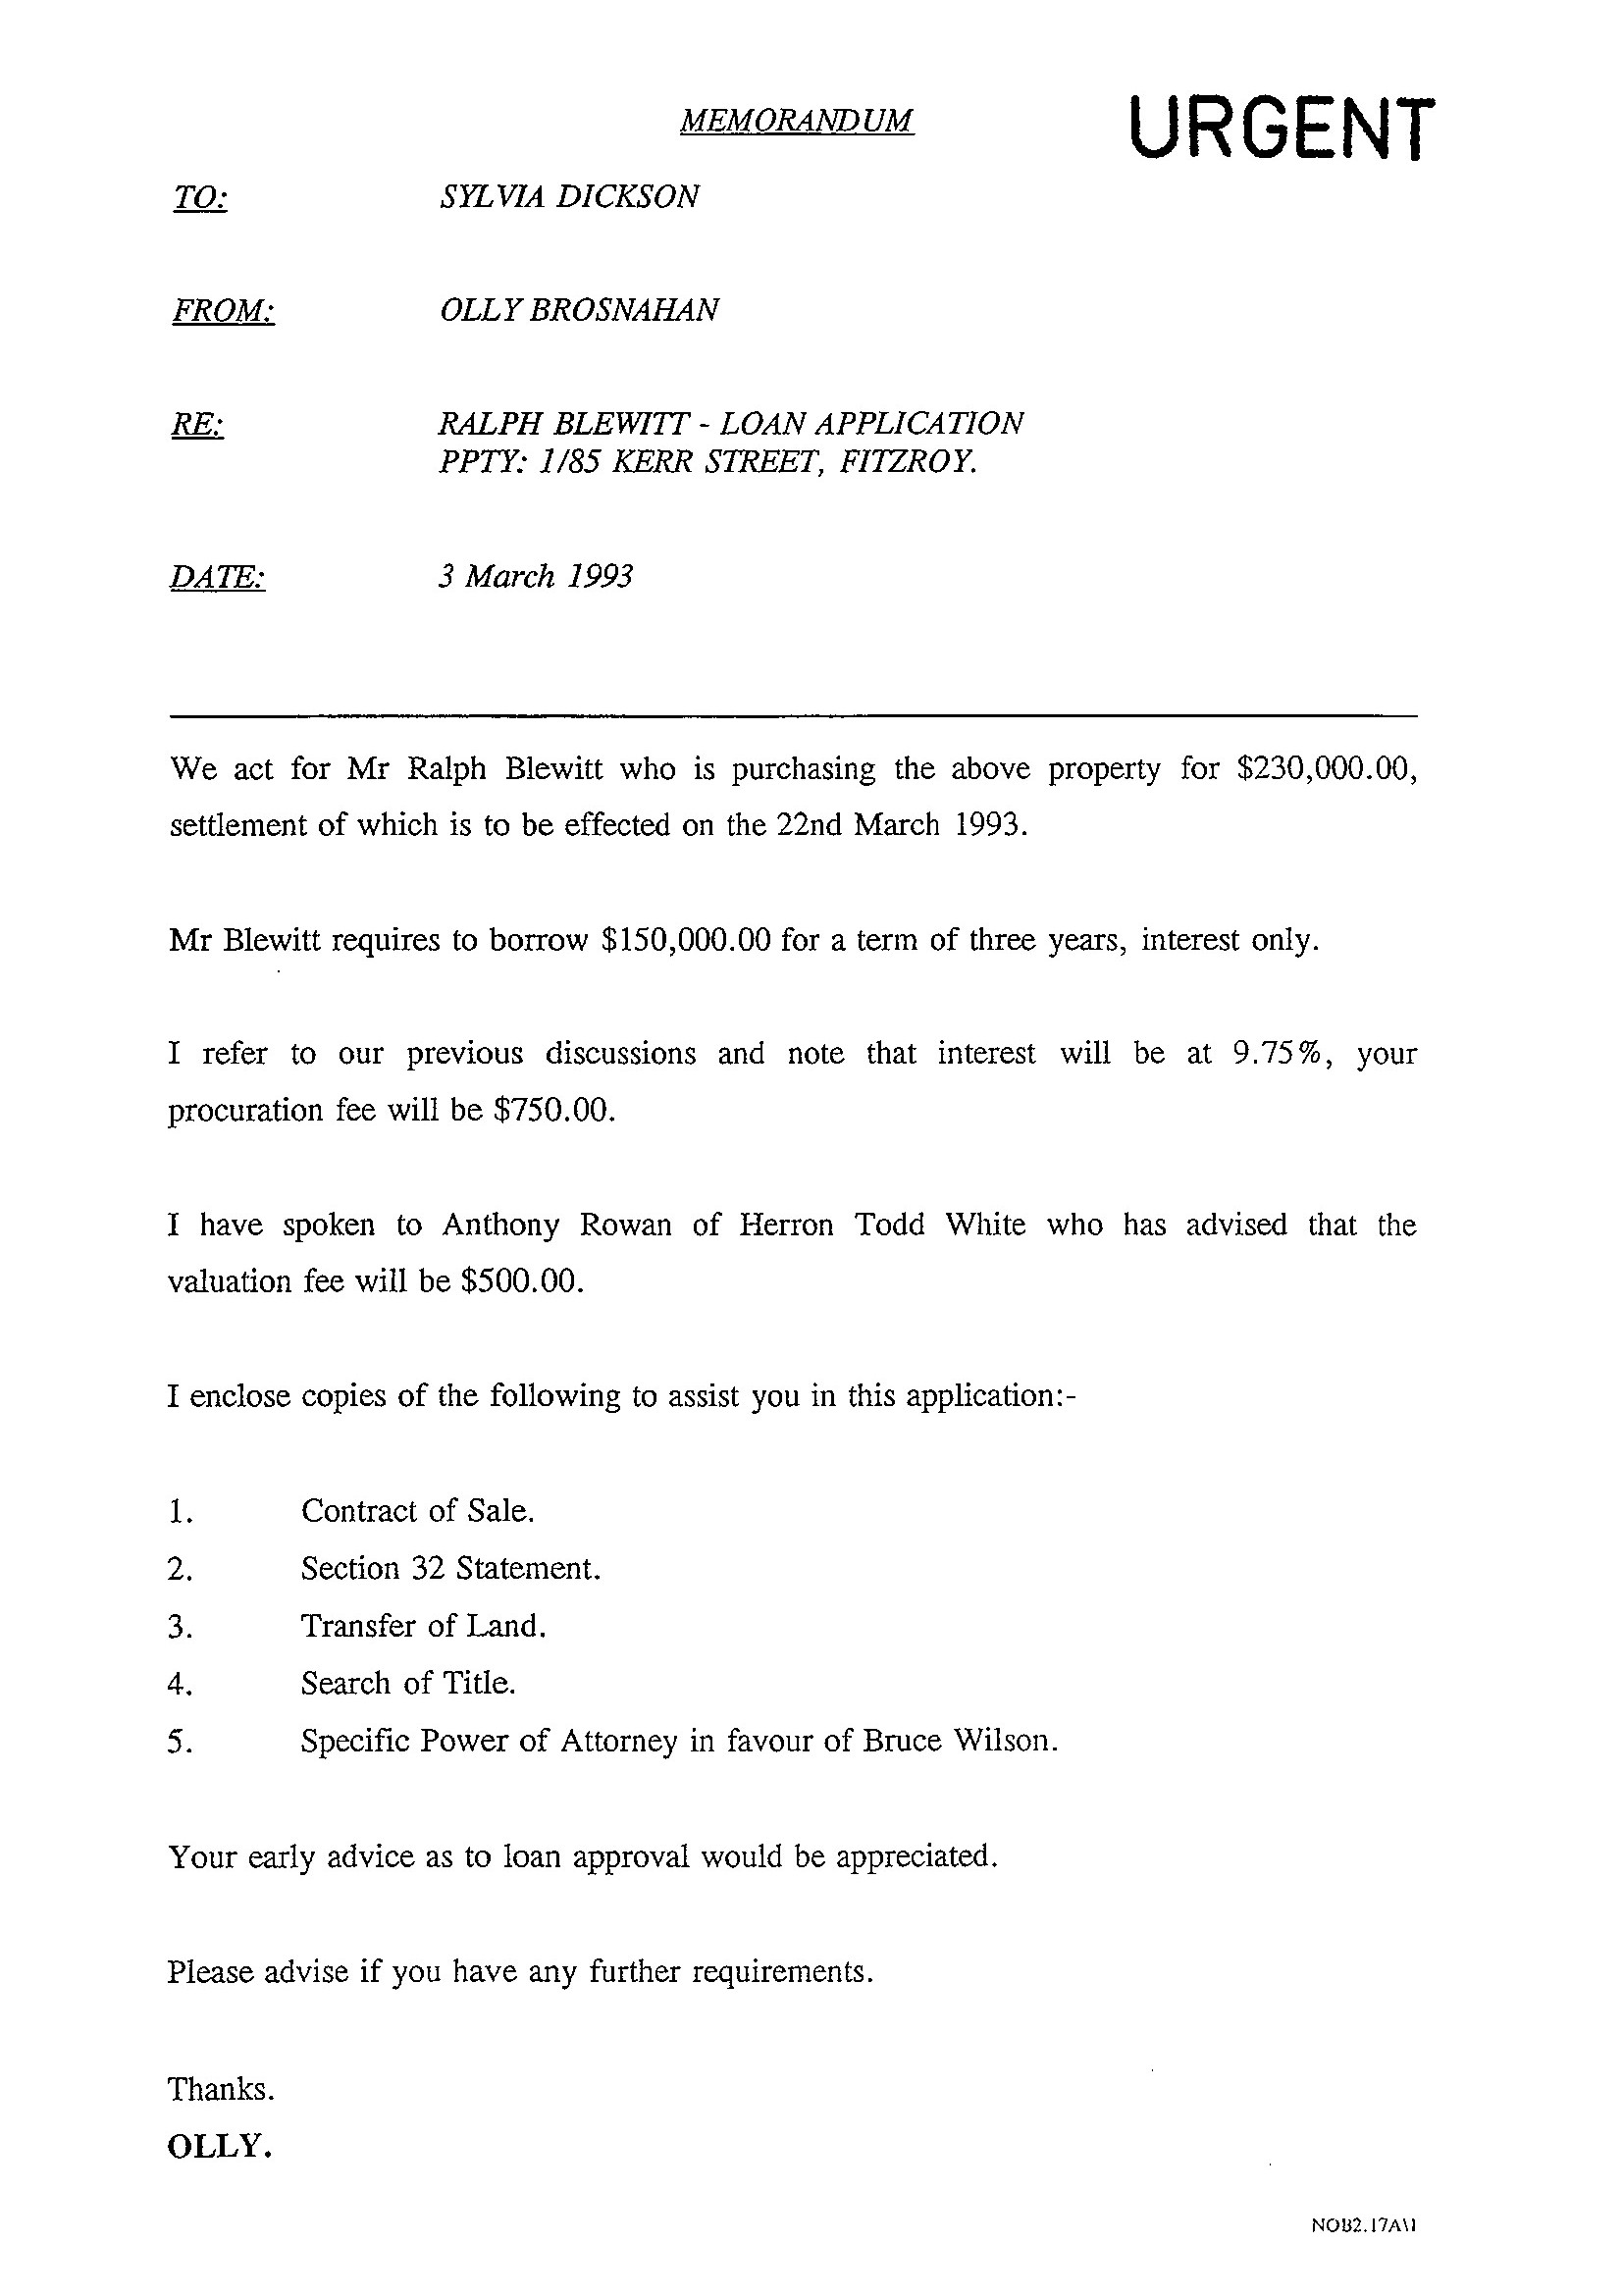 Turnbull handed over nearly half a billion borrowed dollars to the a memo from sylvia to olive brosnan about the application for the loan for ralph blewitt and the kerr street property altavistaventures Image collections